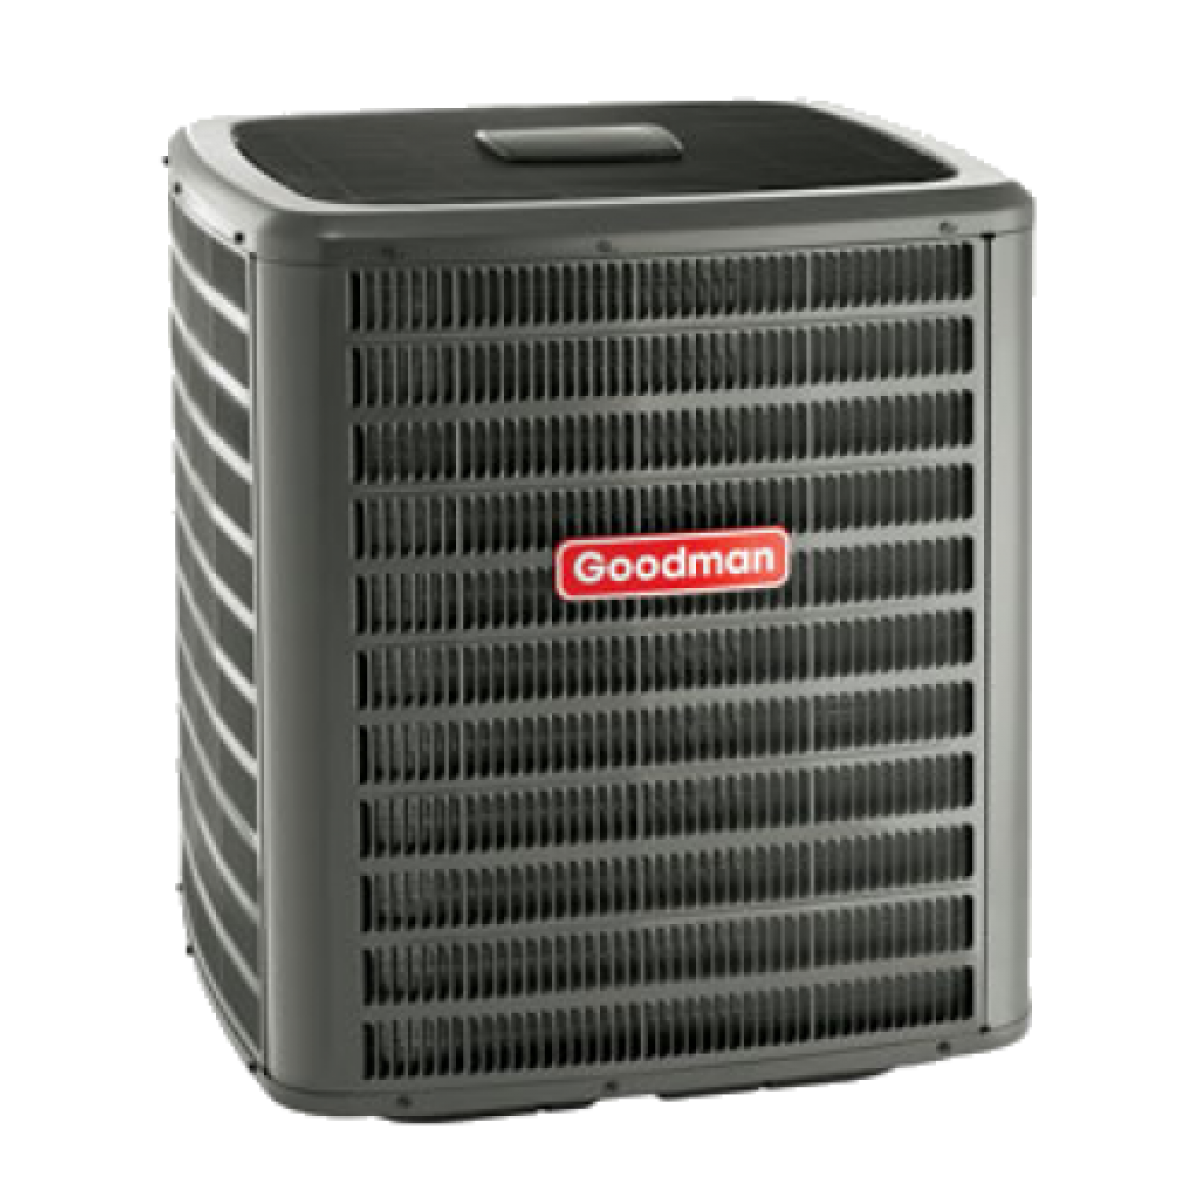 Goodman 2 5 Ton 15 Seer Heat Pump Split System 2 5 Ton